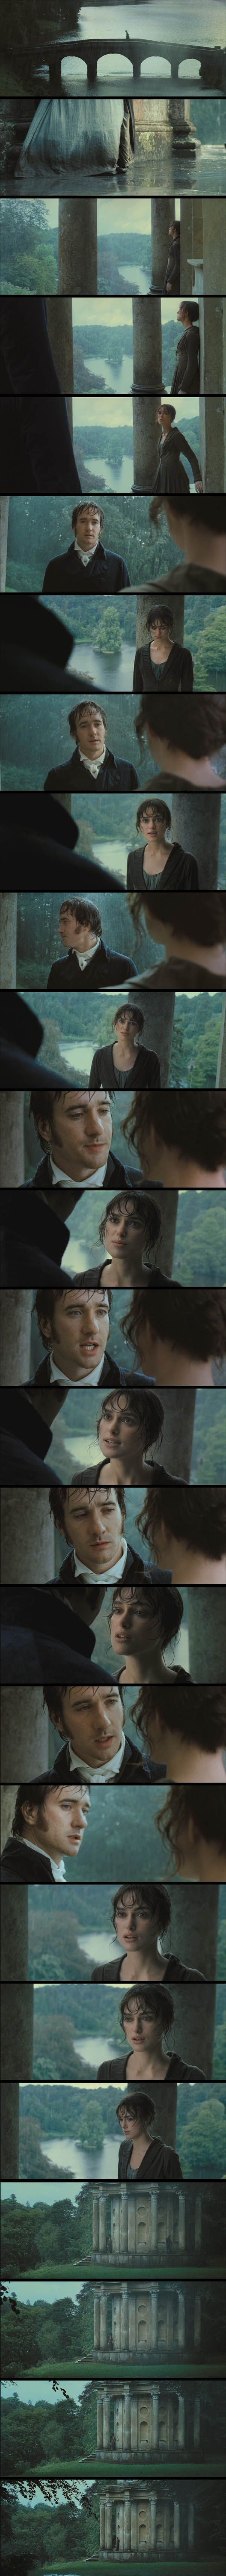 Darcy's first proposal - at the Temple of Apollo (Stourhead Garden, Warminster, Wiltshire, England, UK) Pride & Prejudice (2005) #janeausten #joewright